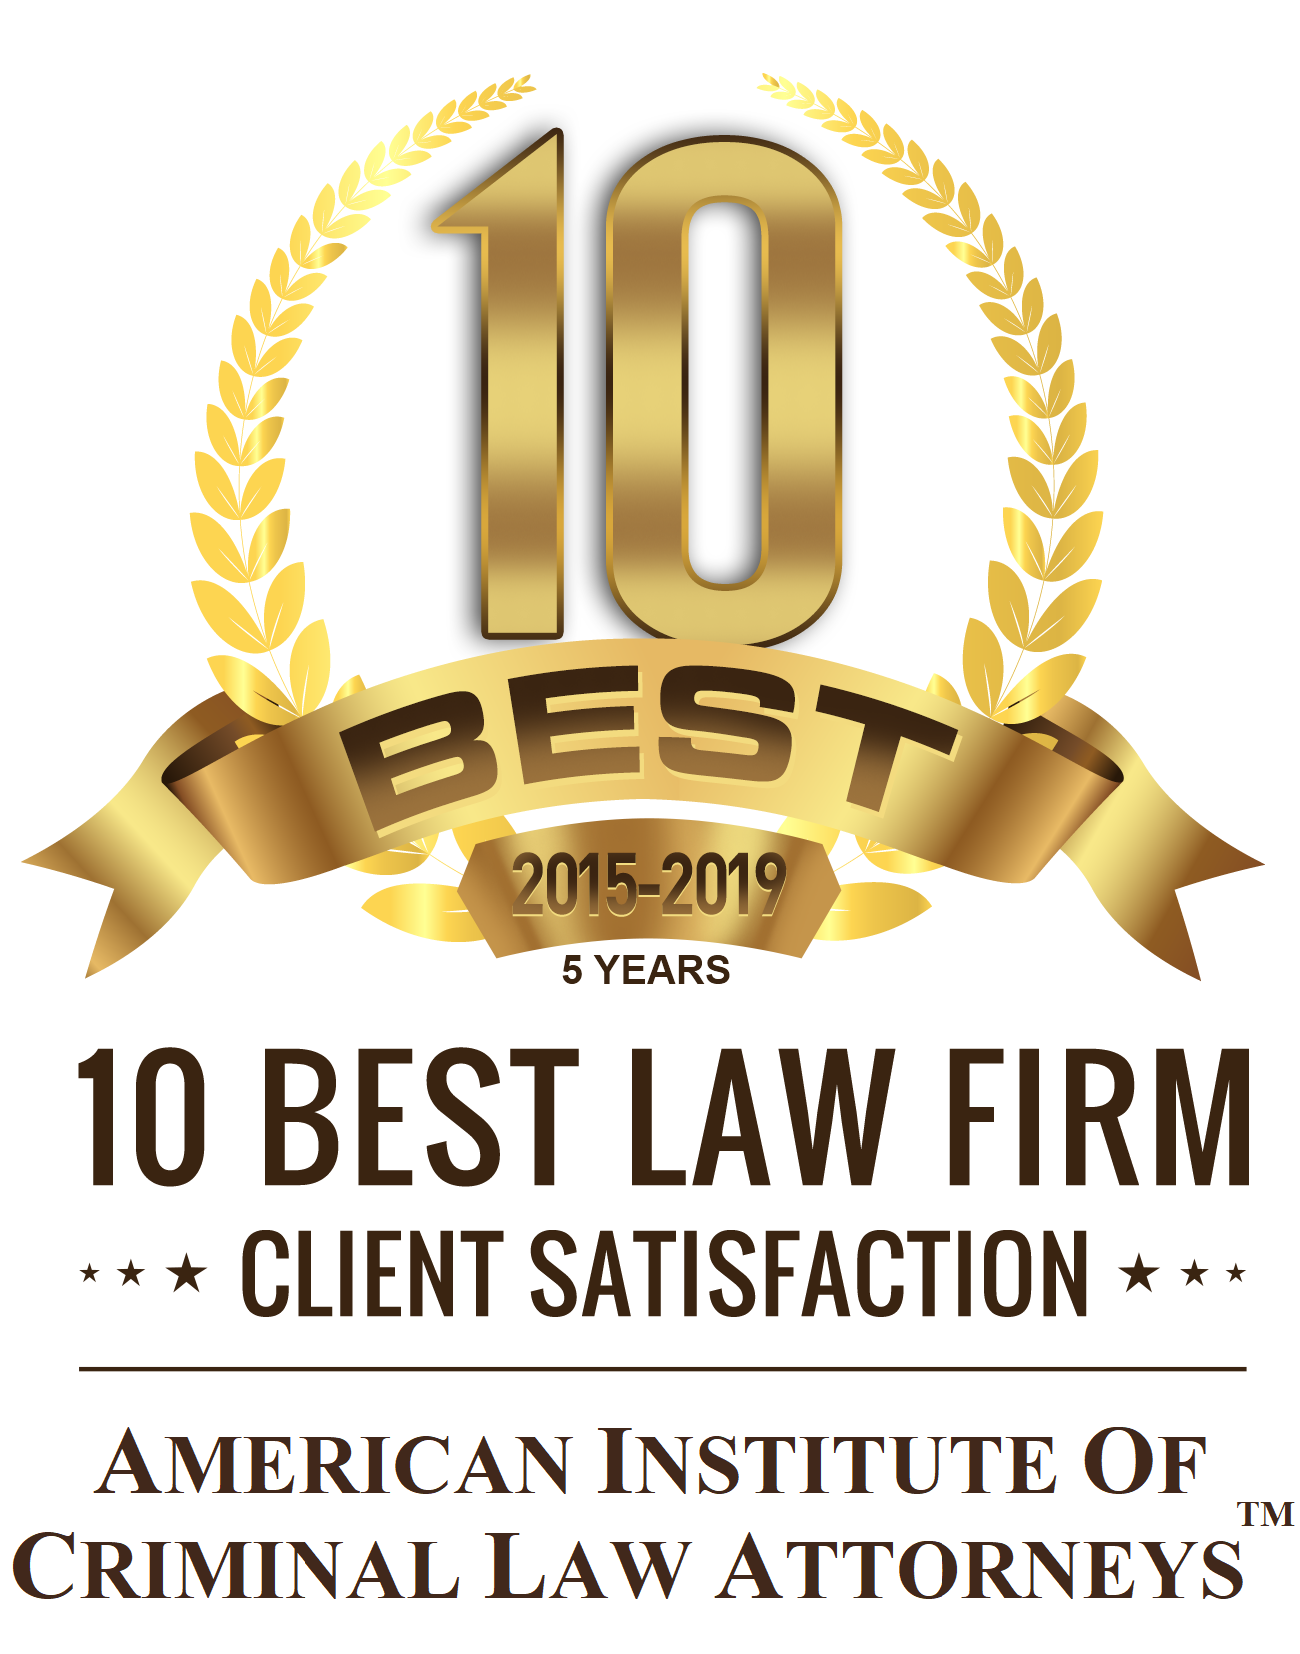 10 Best Law Firm for Client Satisfaction by the American Institute of Criminal Law Attorneys